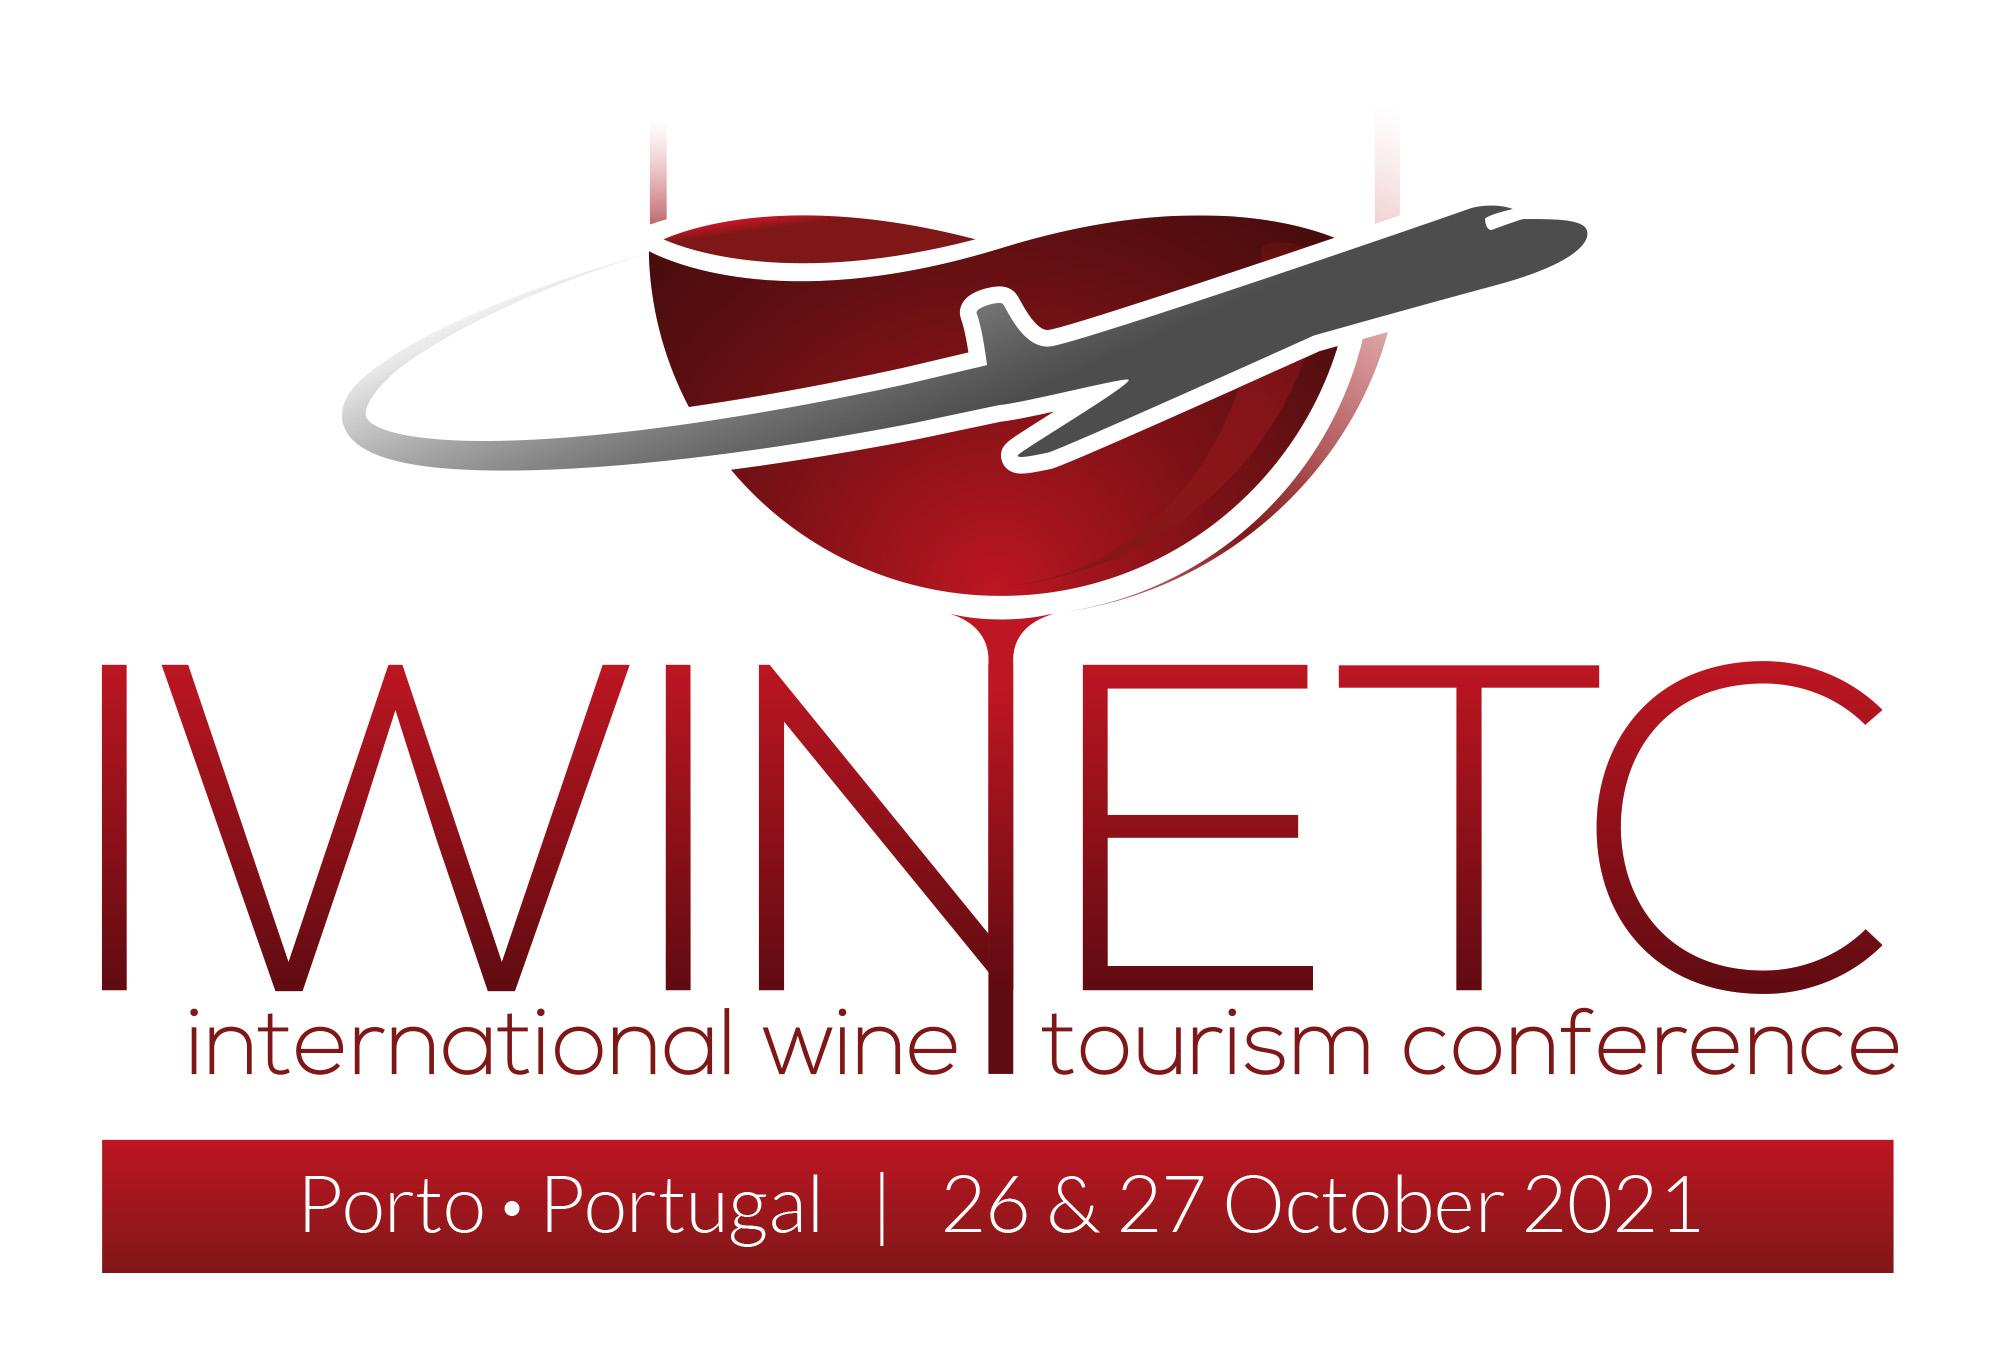 International Wine Tourism Conference returns to Porto this year